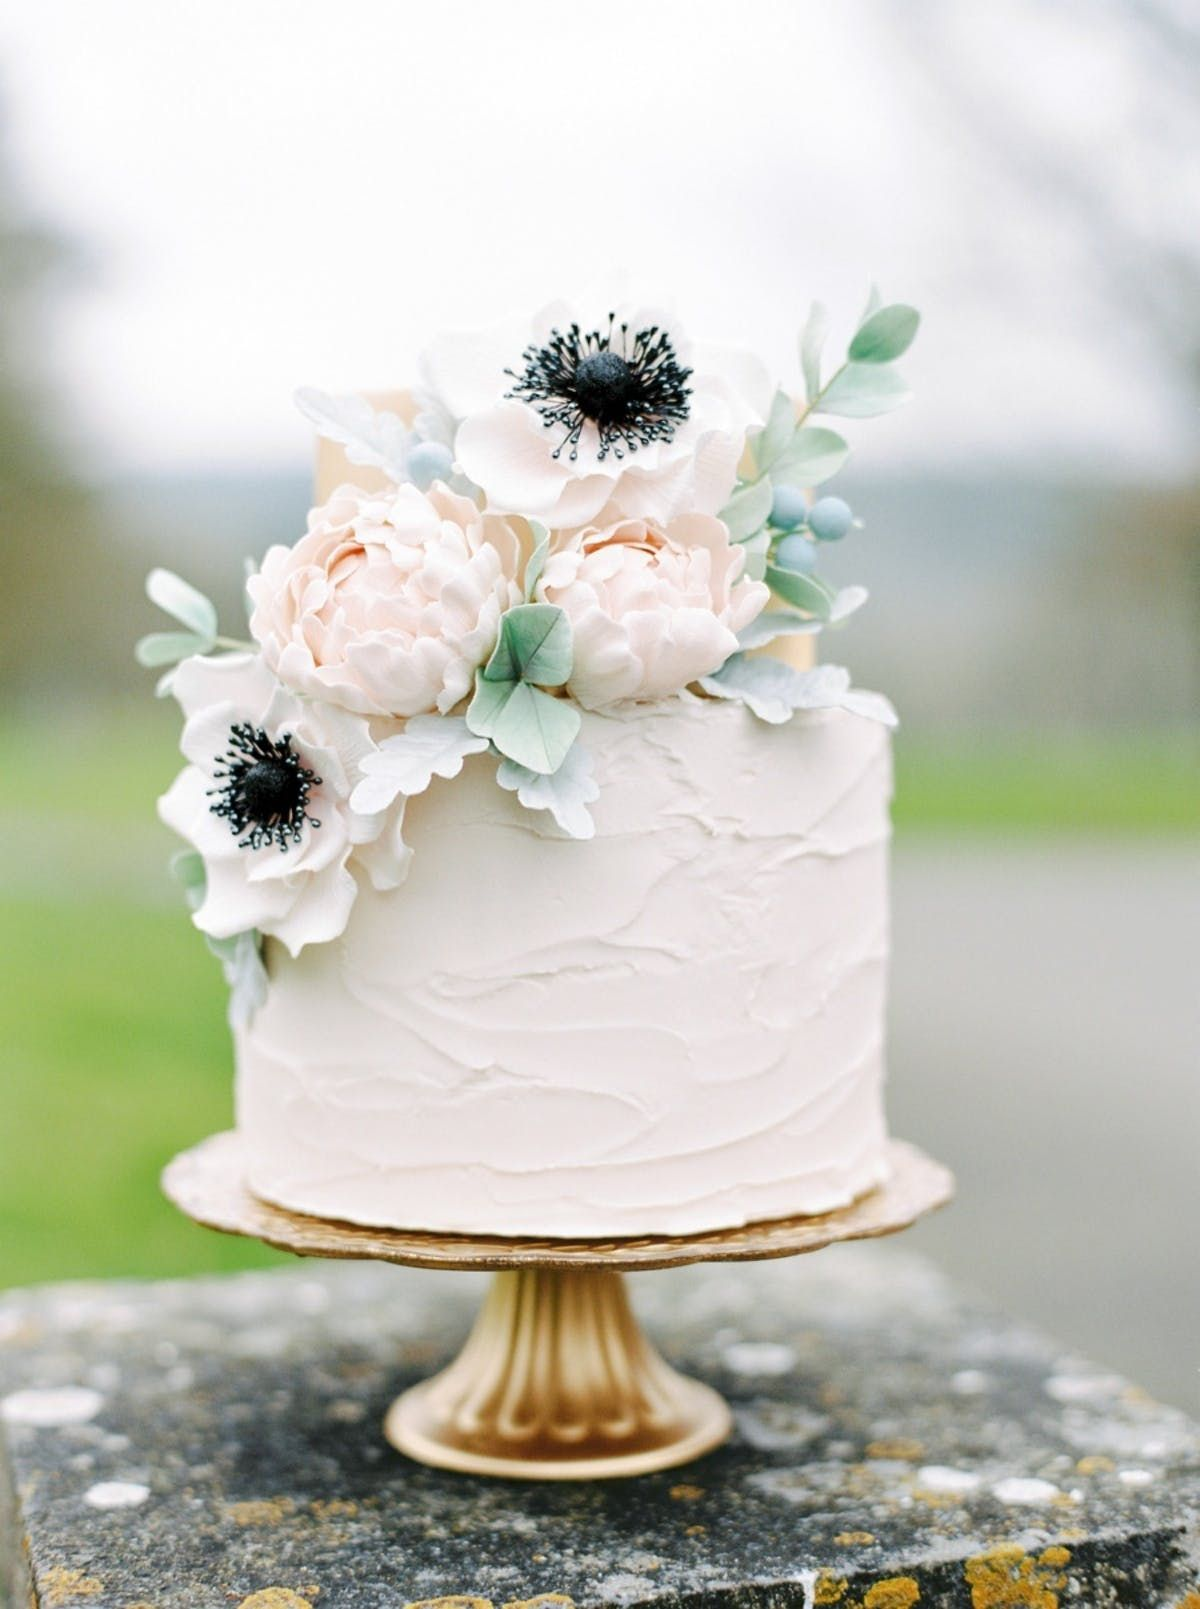 100 Cakes Almost Too Pretty To Eat Photo By Paula OHara Photography